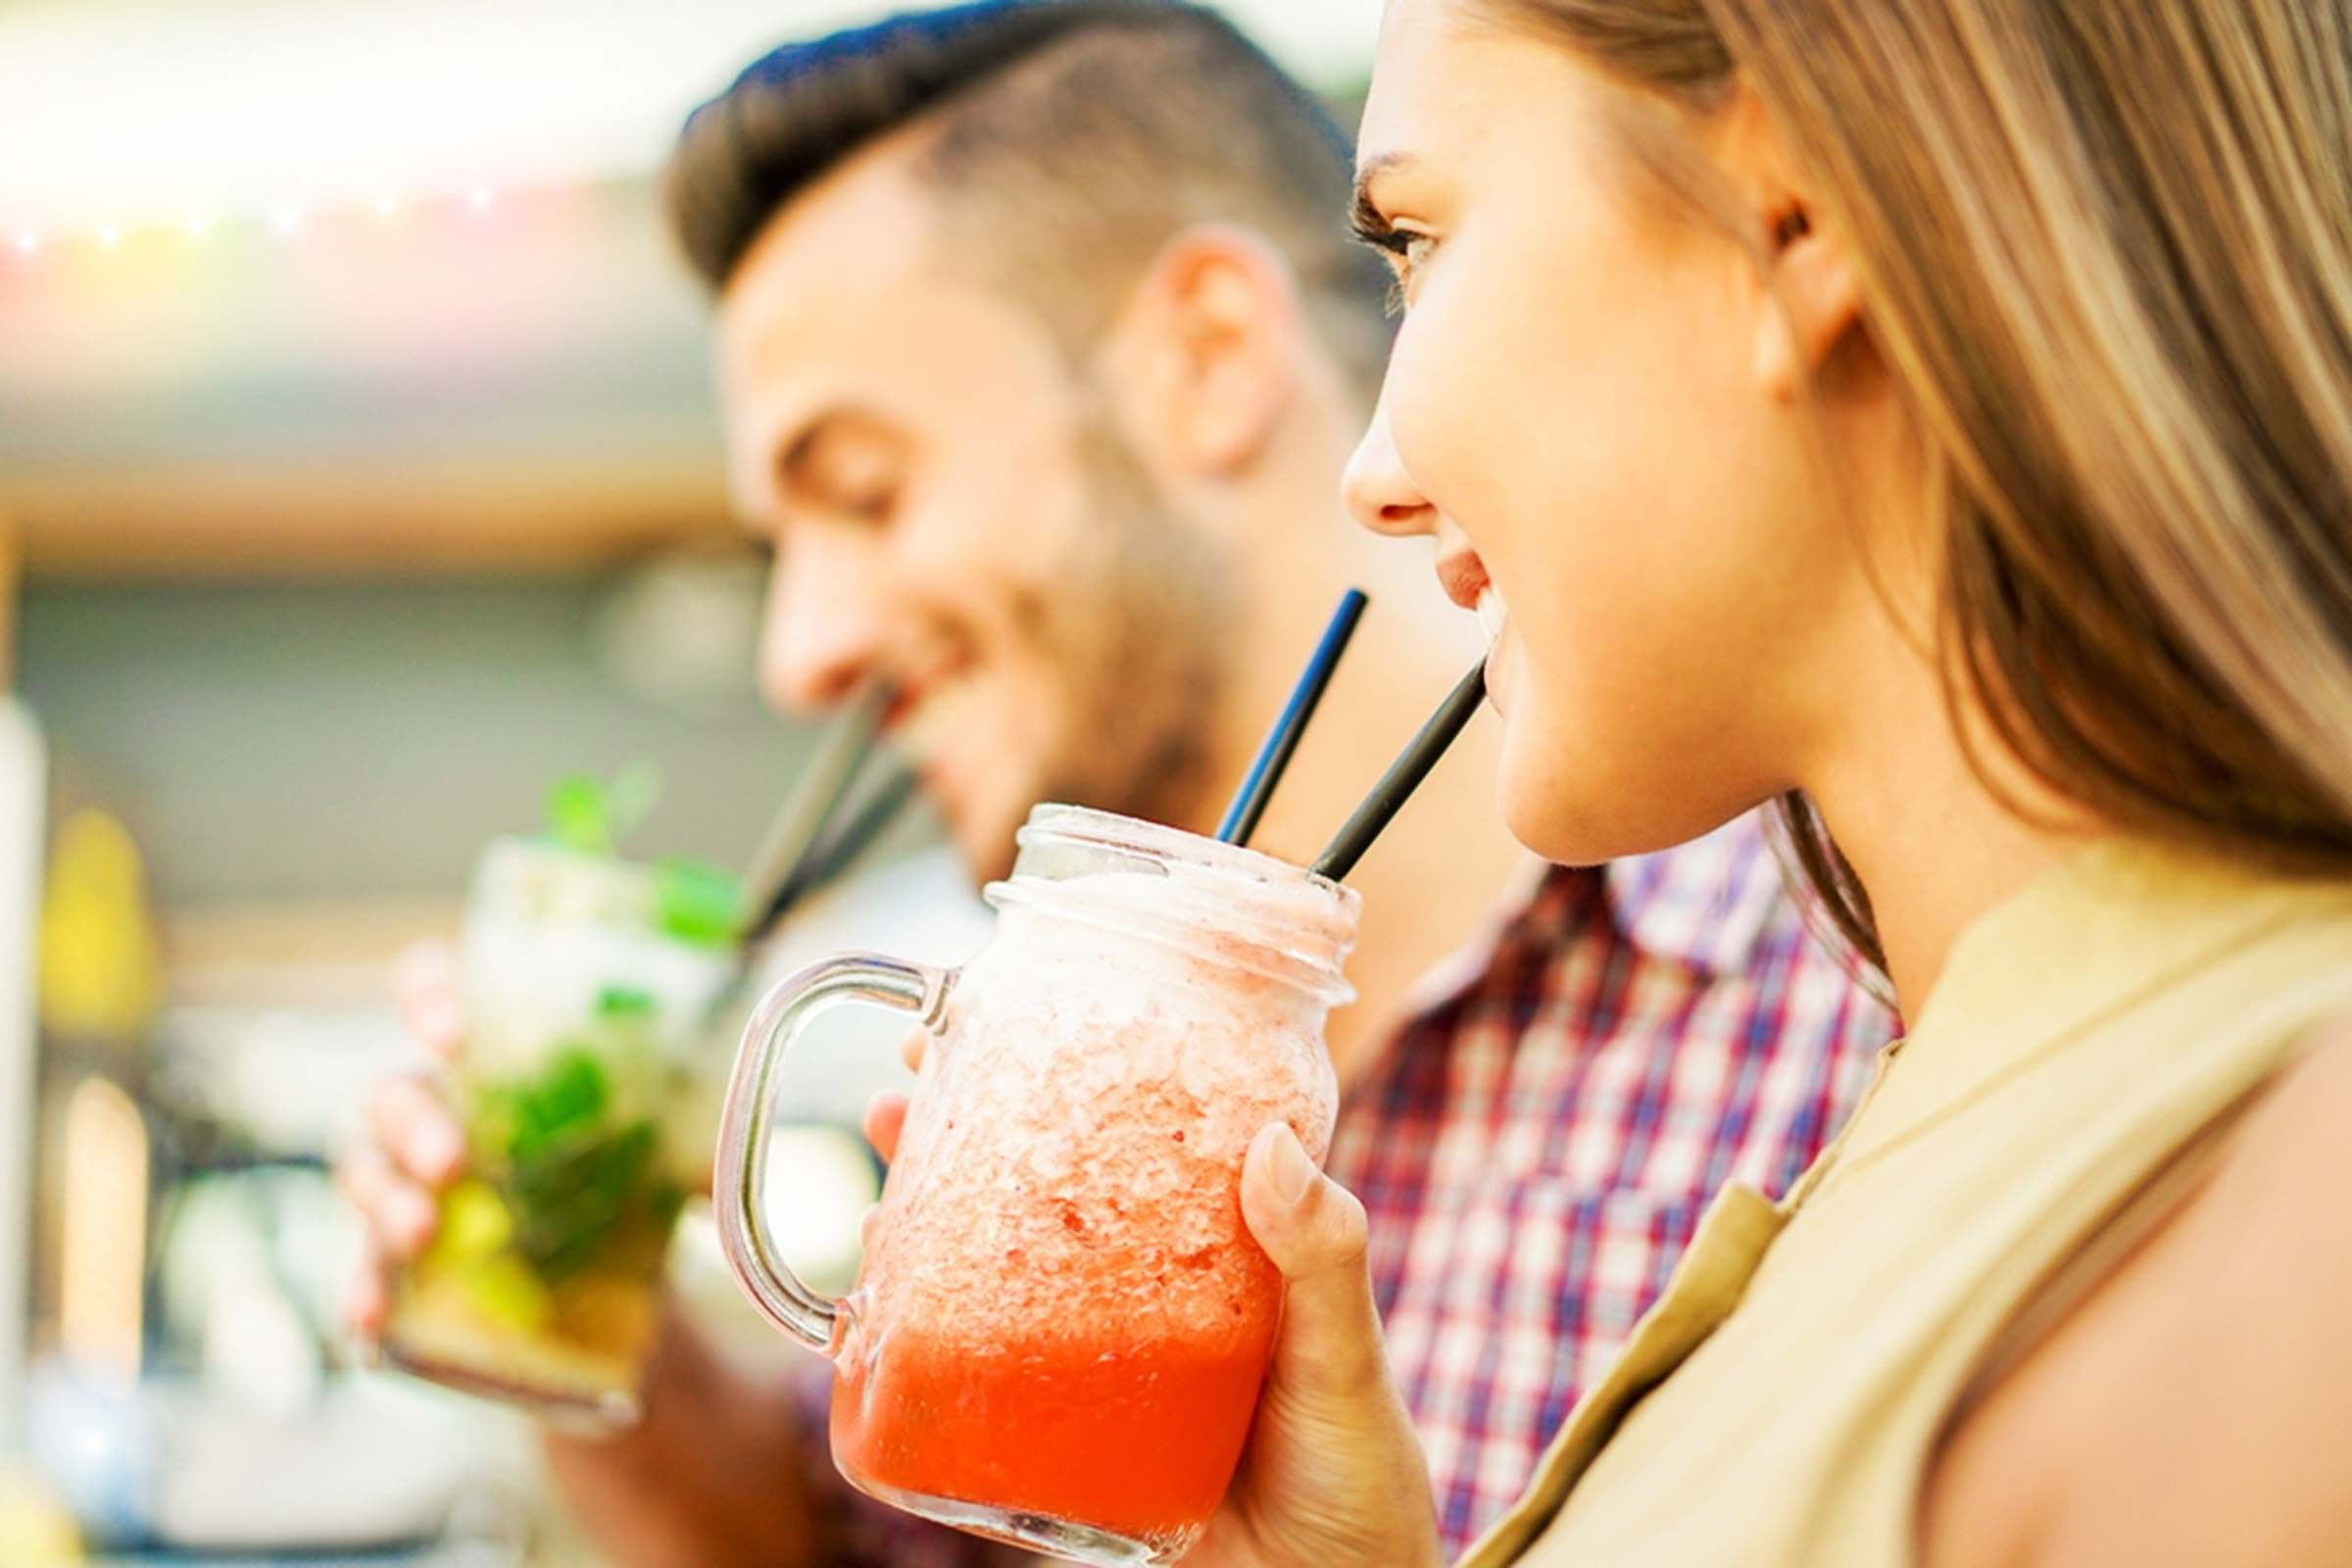 Tasty Ways To Drink Up Without Packing On The Pounds